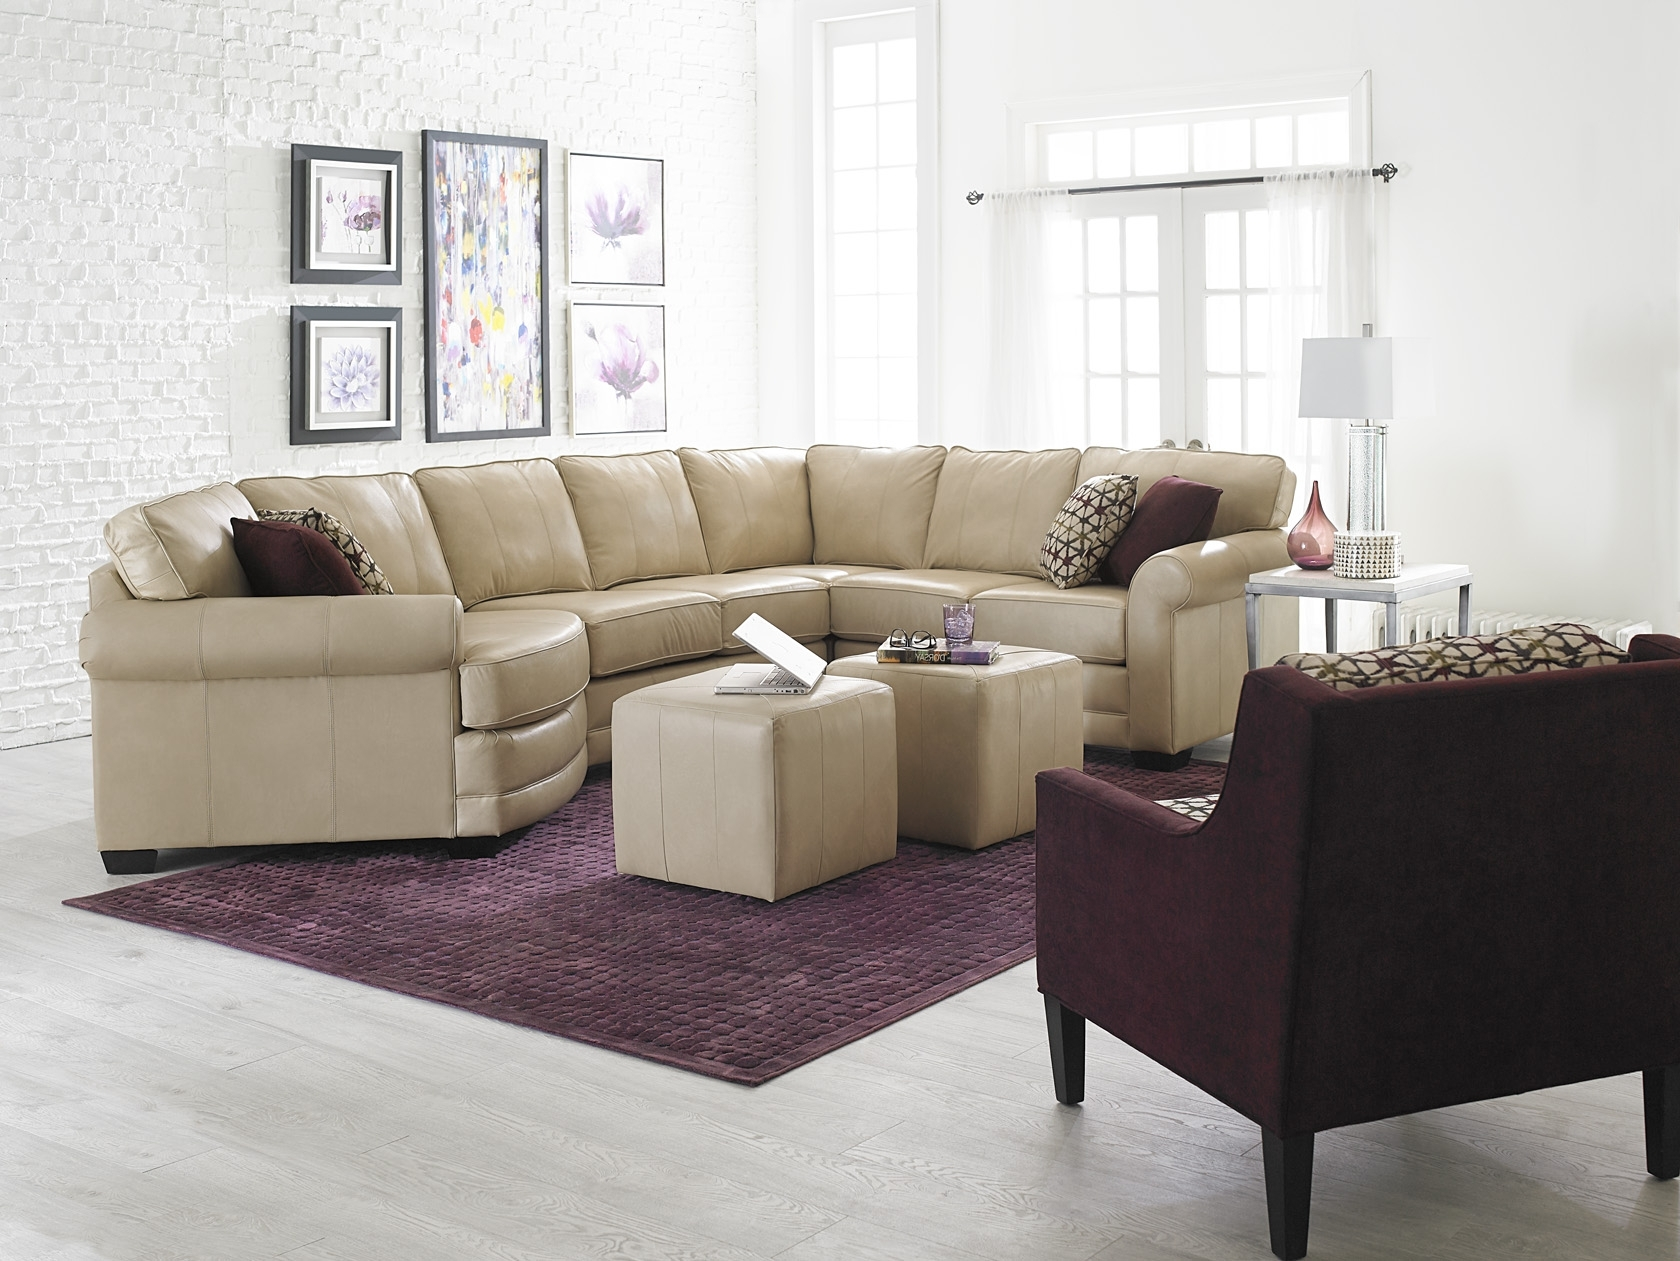 England Furniture Leather Sectional With Cuddler Seat (View 9 of 20)